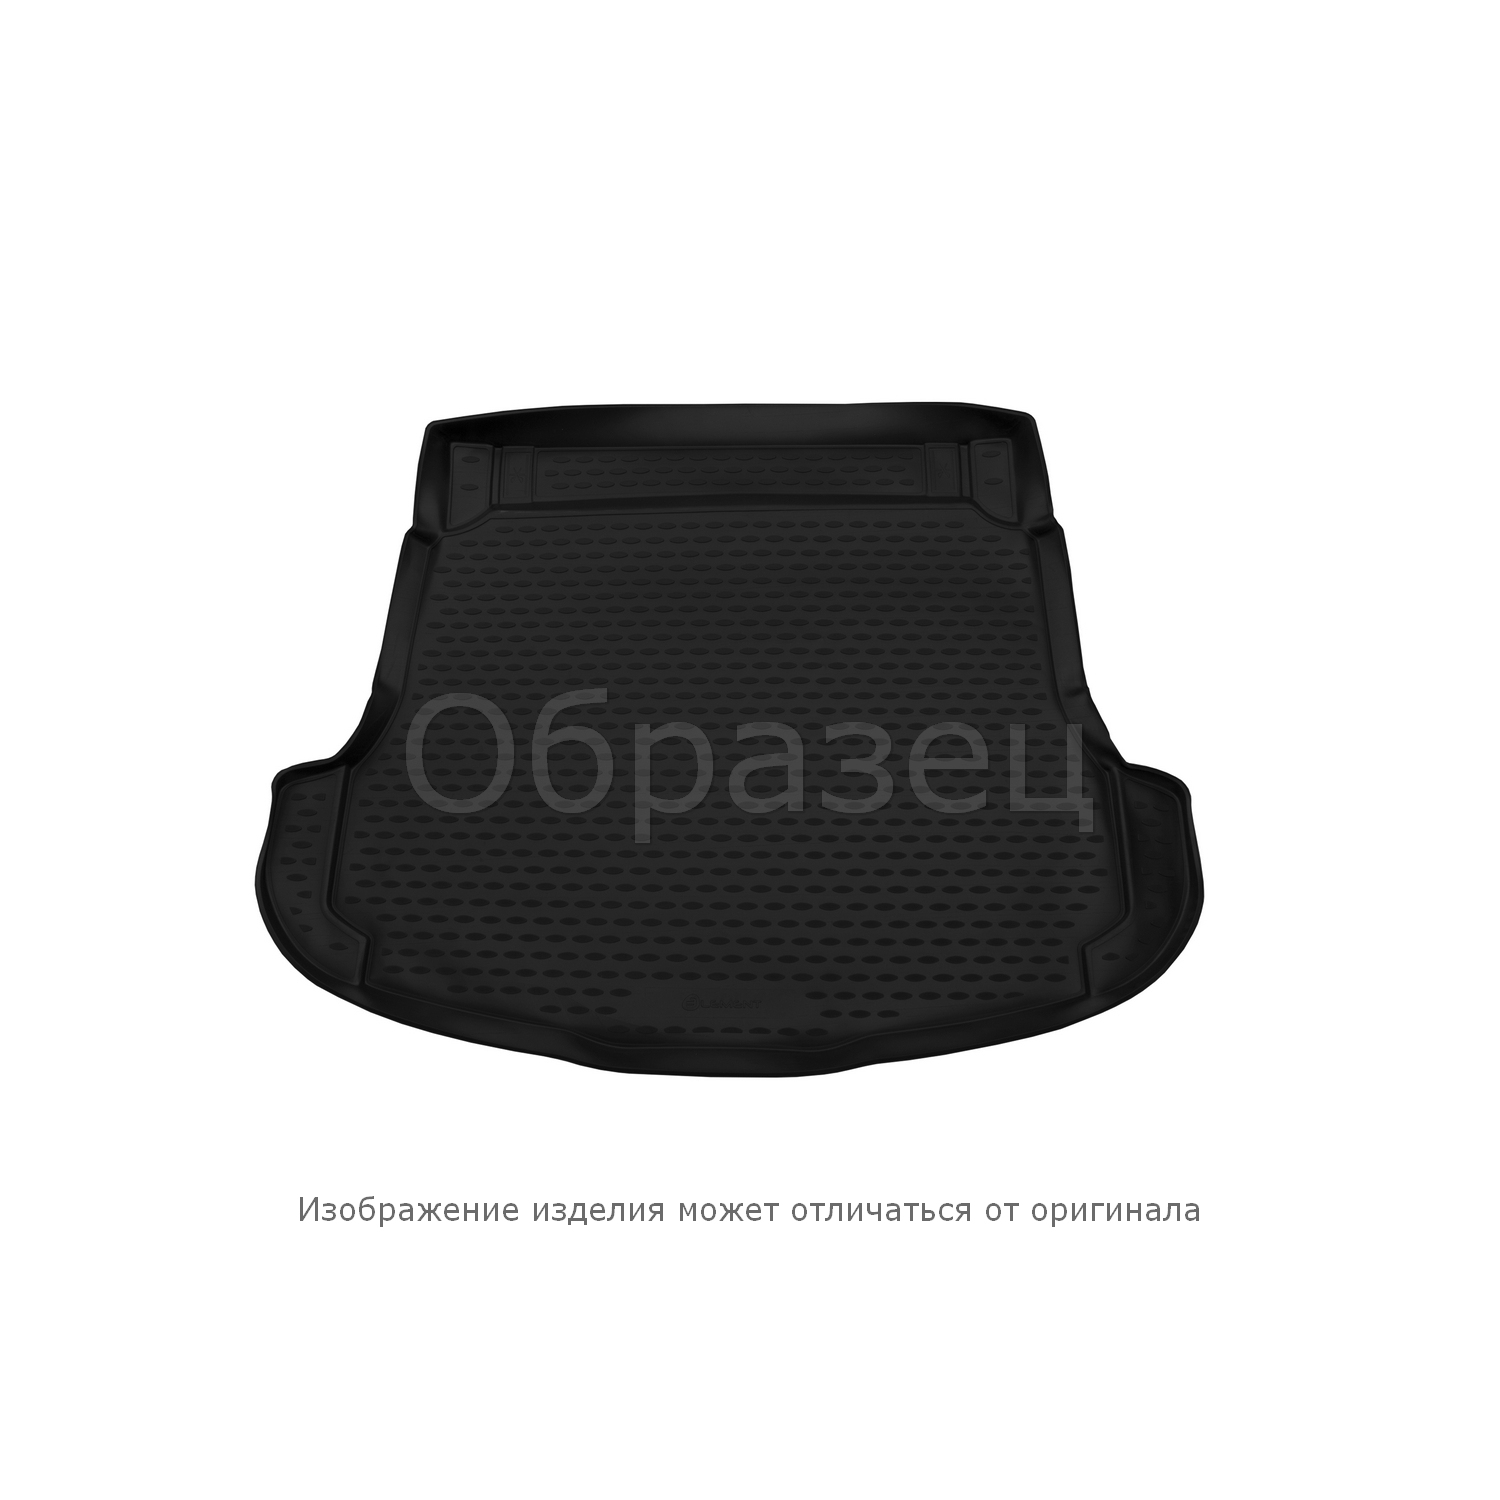 Trunk Mat For SUZUKI Swift 2010, HB. NLC.47.21.B11 NLC.47.21.B11